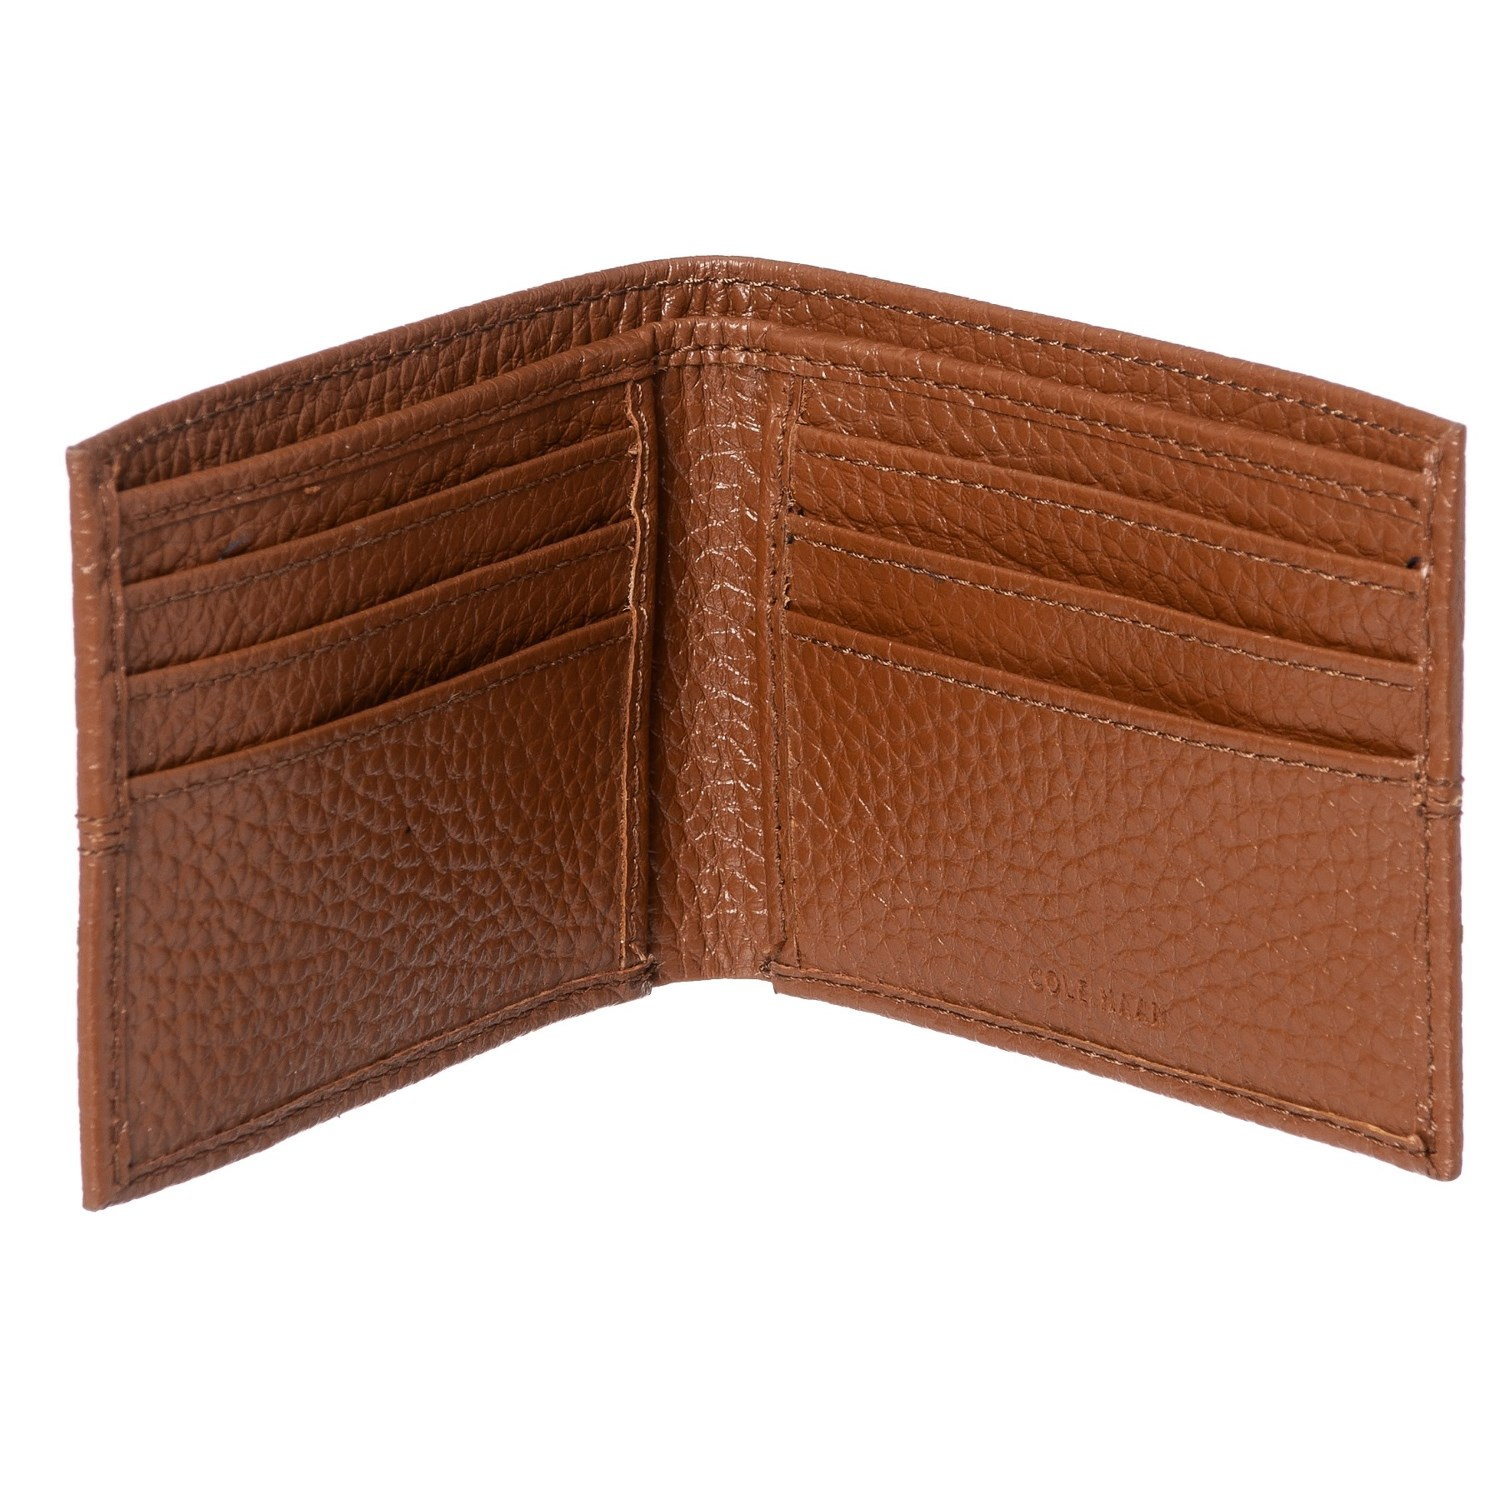 cc706f35d94 cole haan full grain leather bifold wallet for men